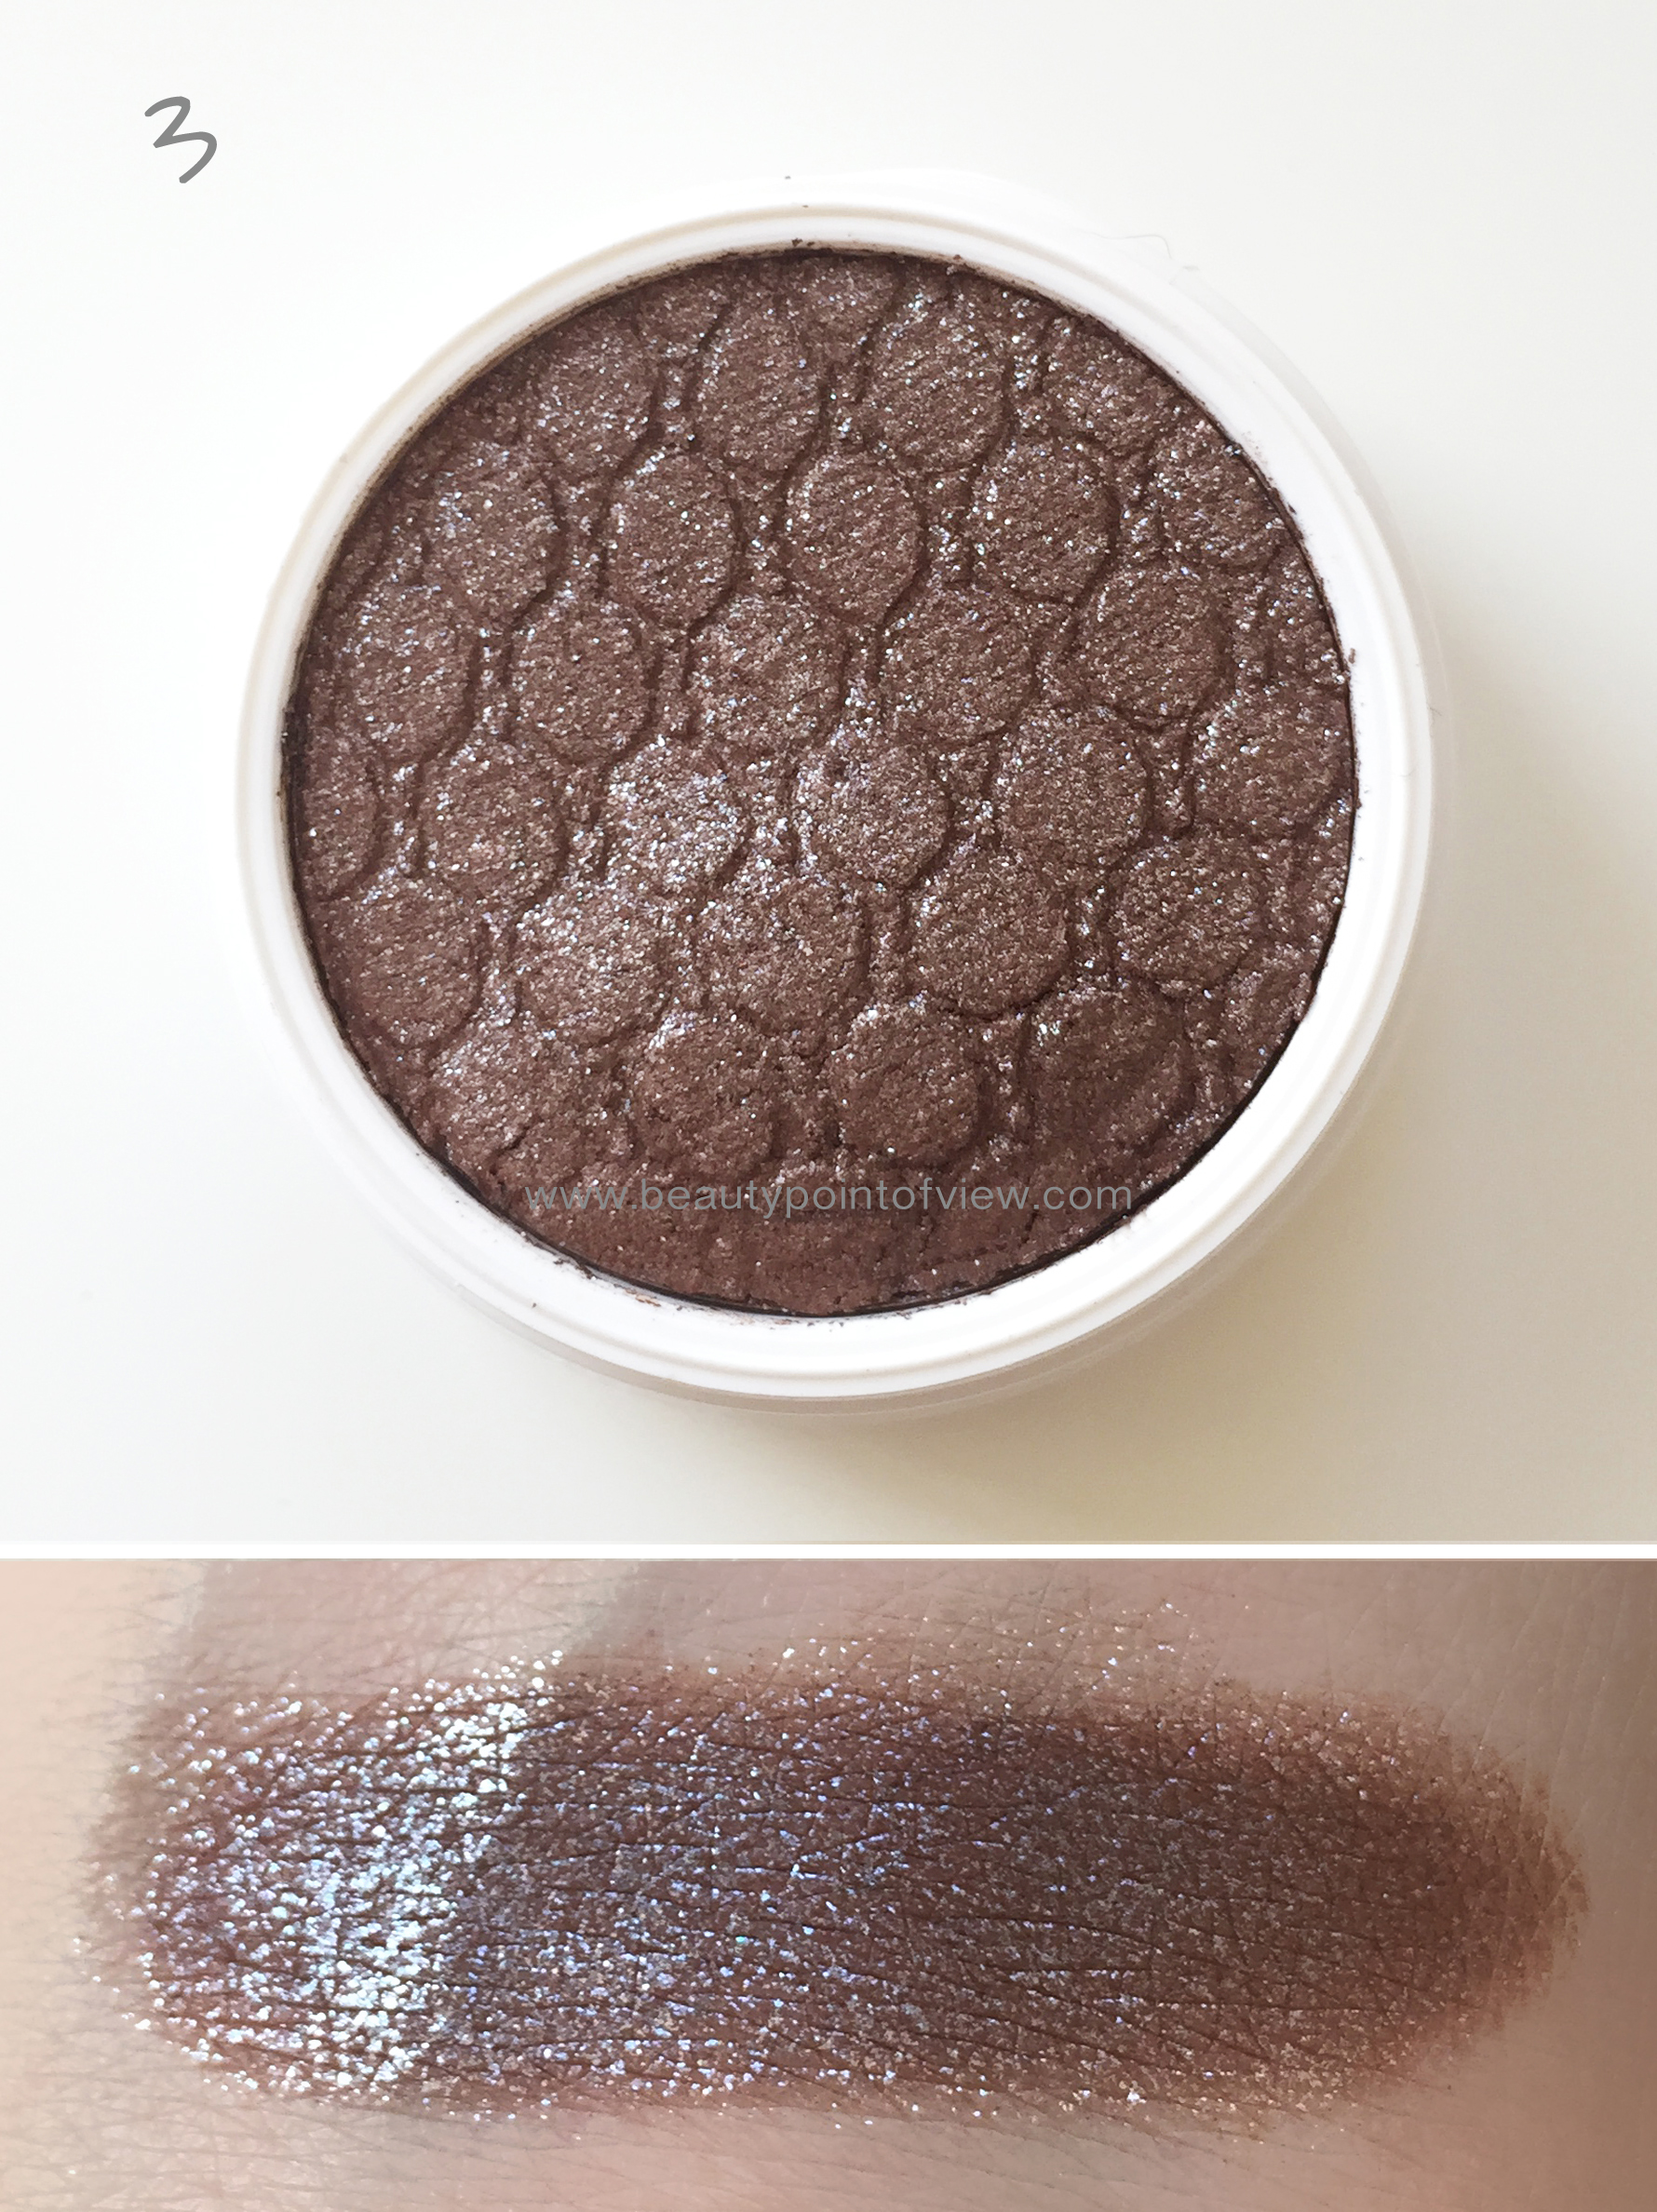 Colourpop Super Shock Eyeshadows - 3